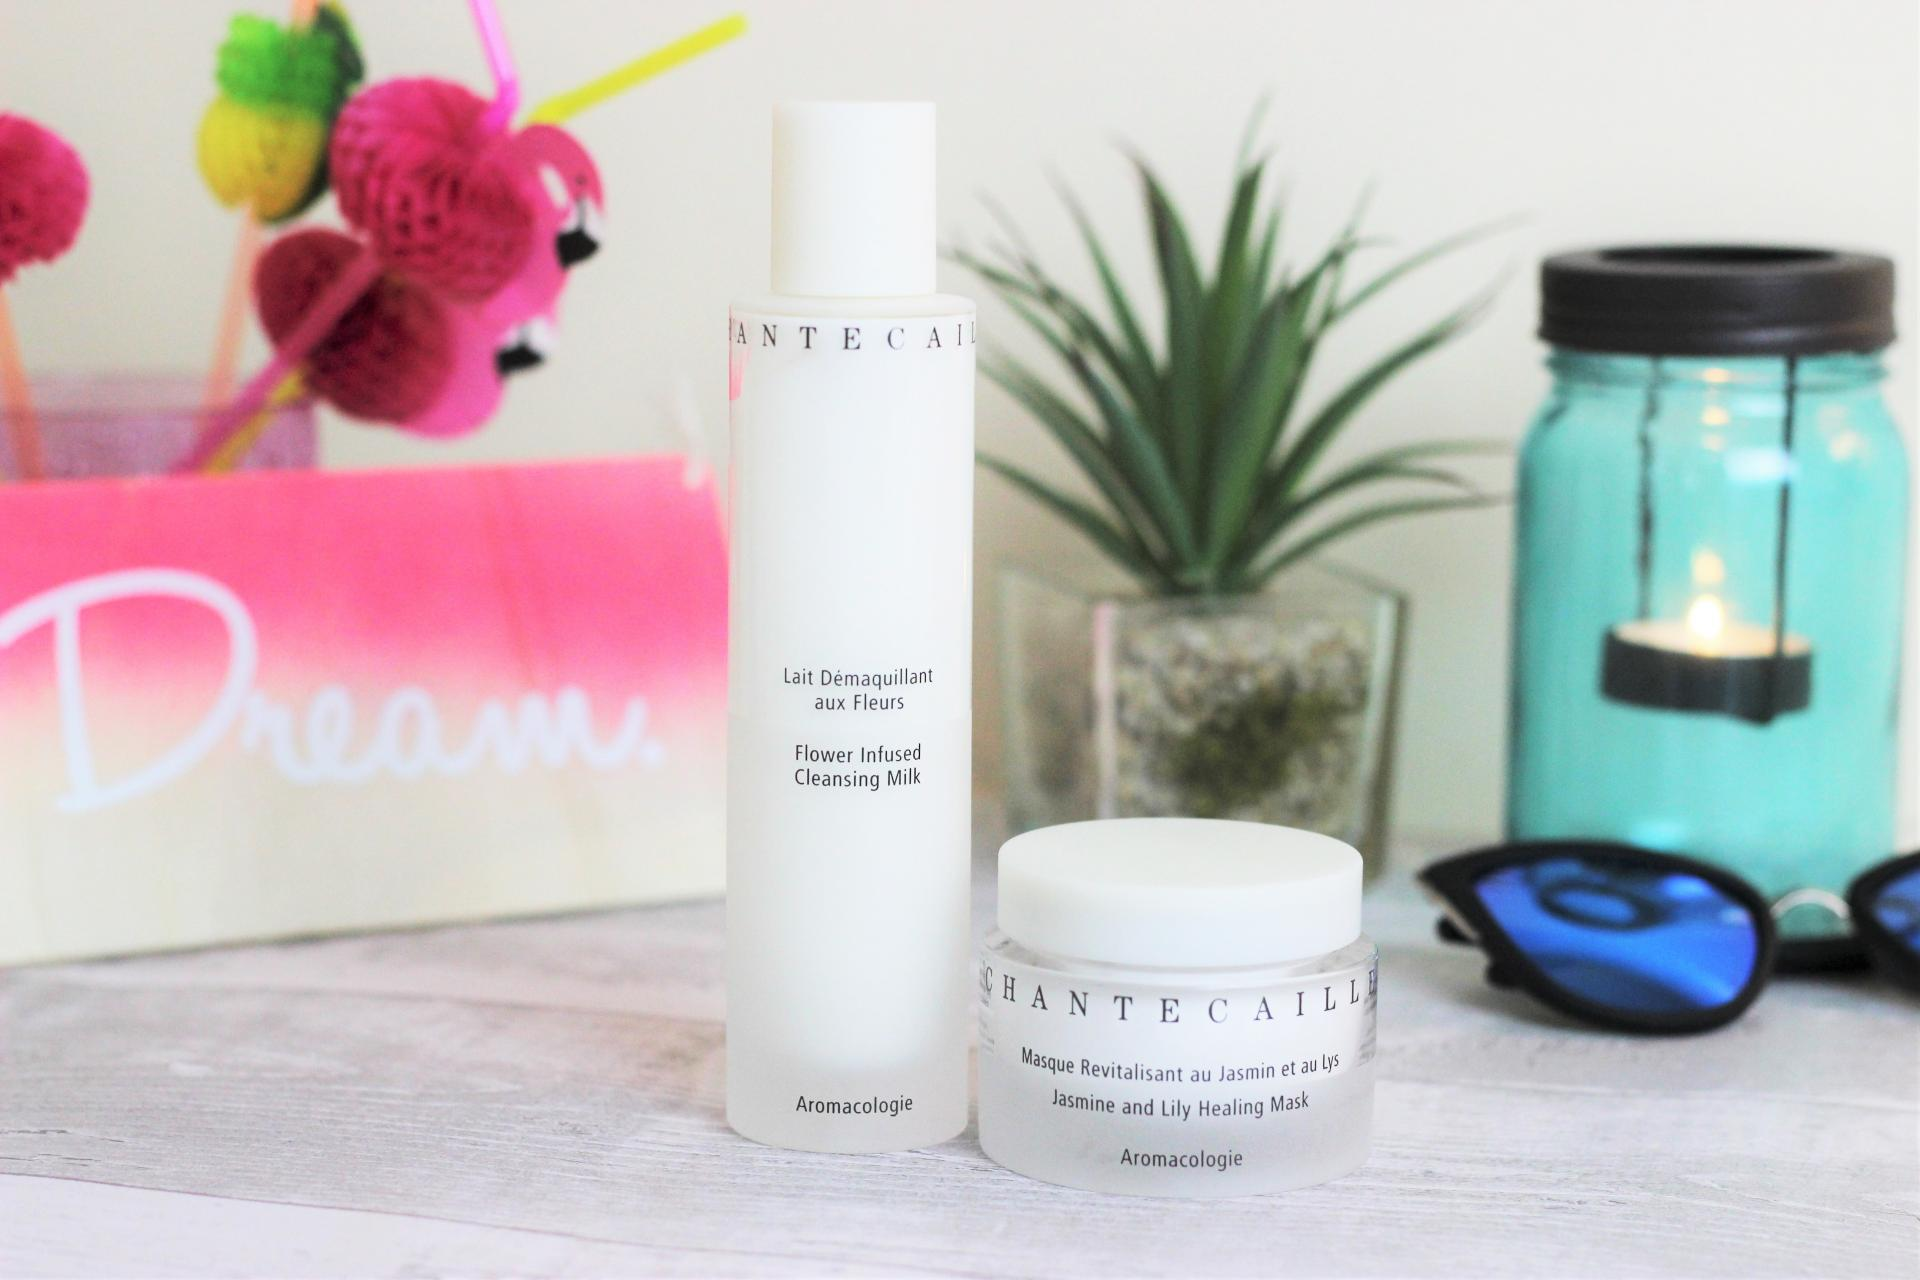 Chantecaille Skin Care Space NK |Flower Infused Cleansing Milk Jasmine Lily Healing Mask